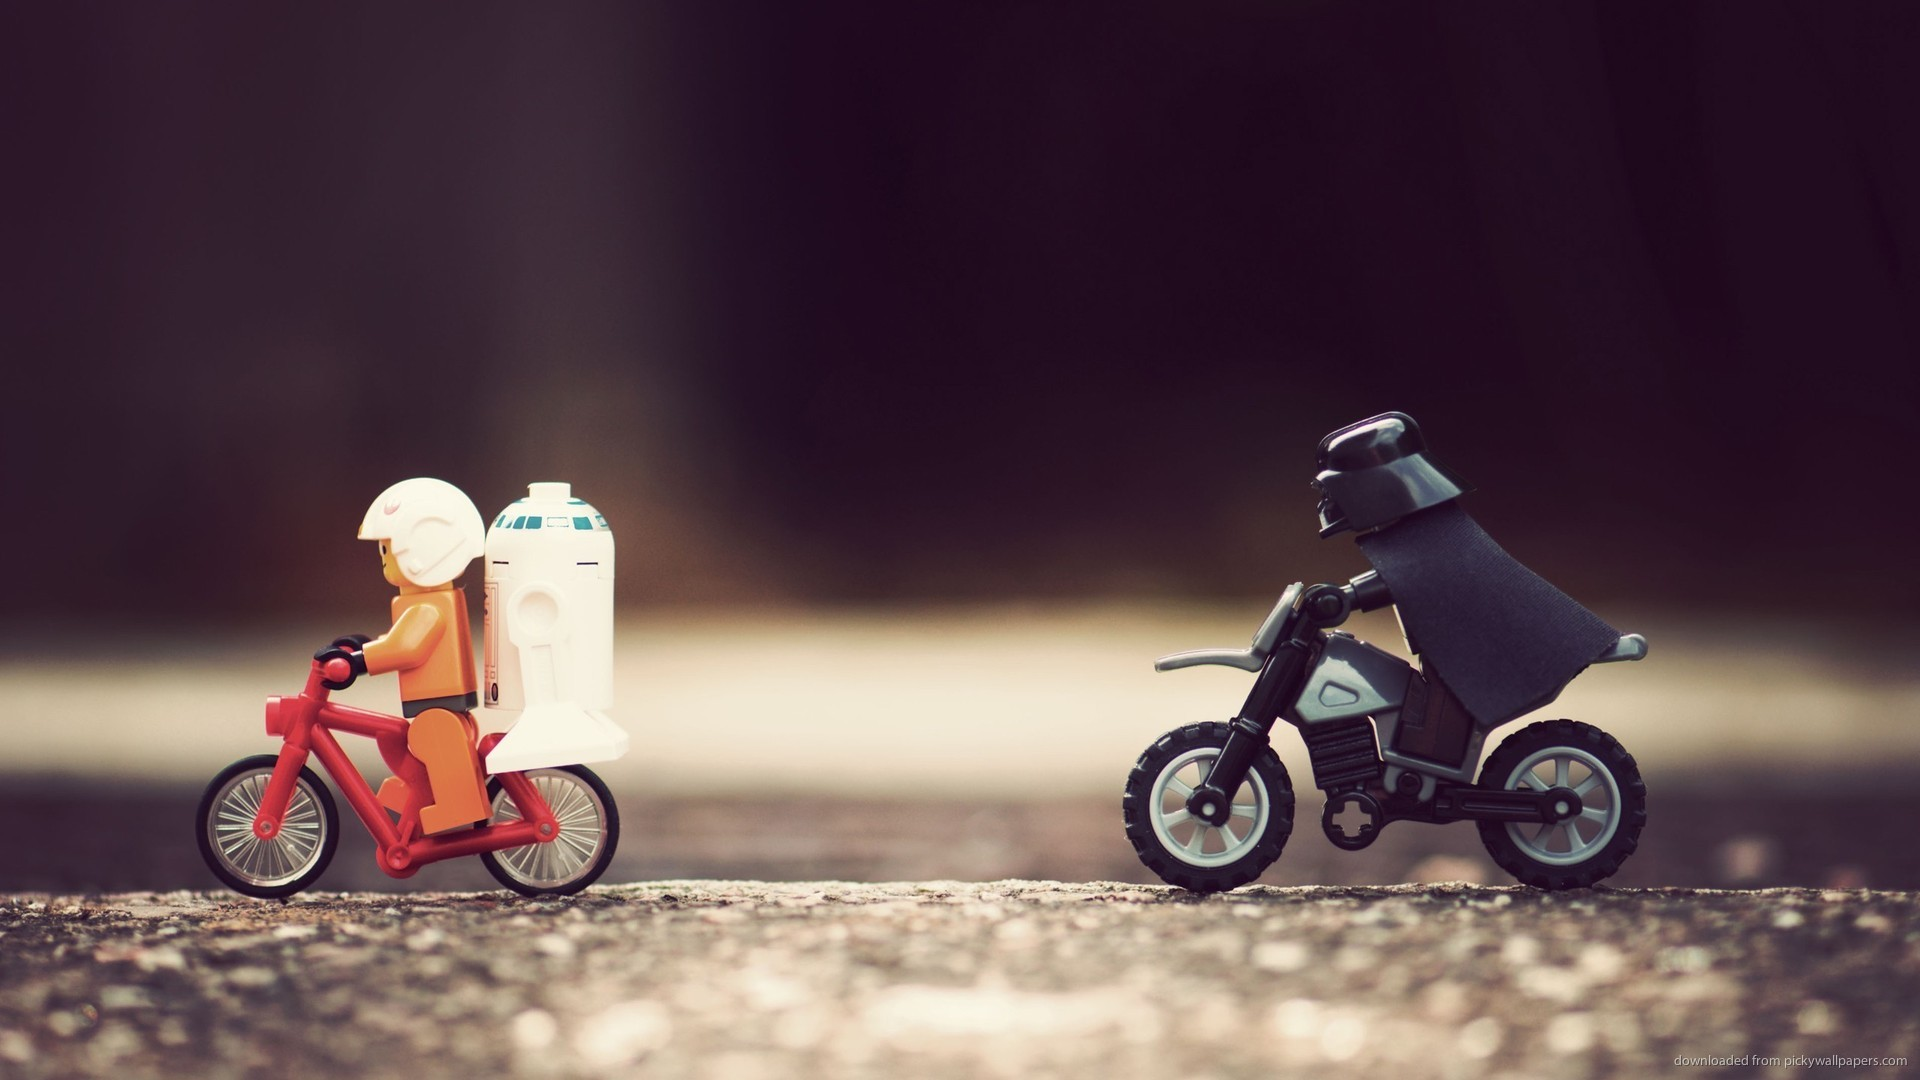 Darth Vader Chasing Luke And R2D2 for 1920×1080